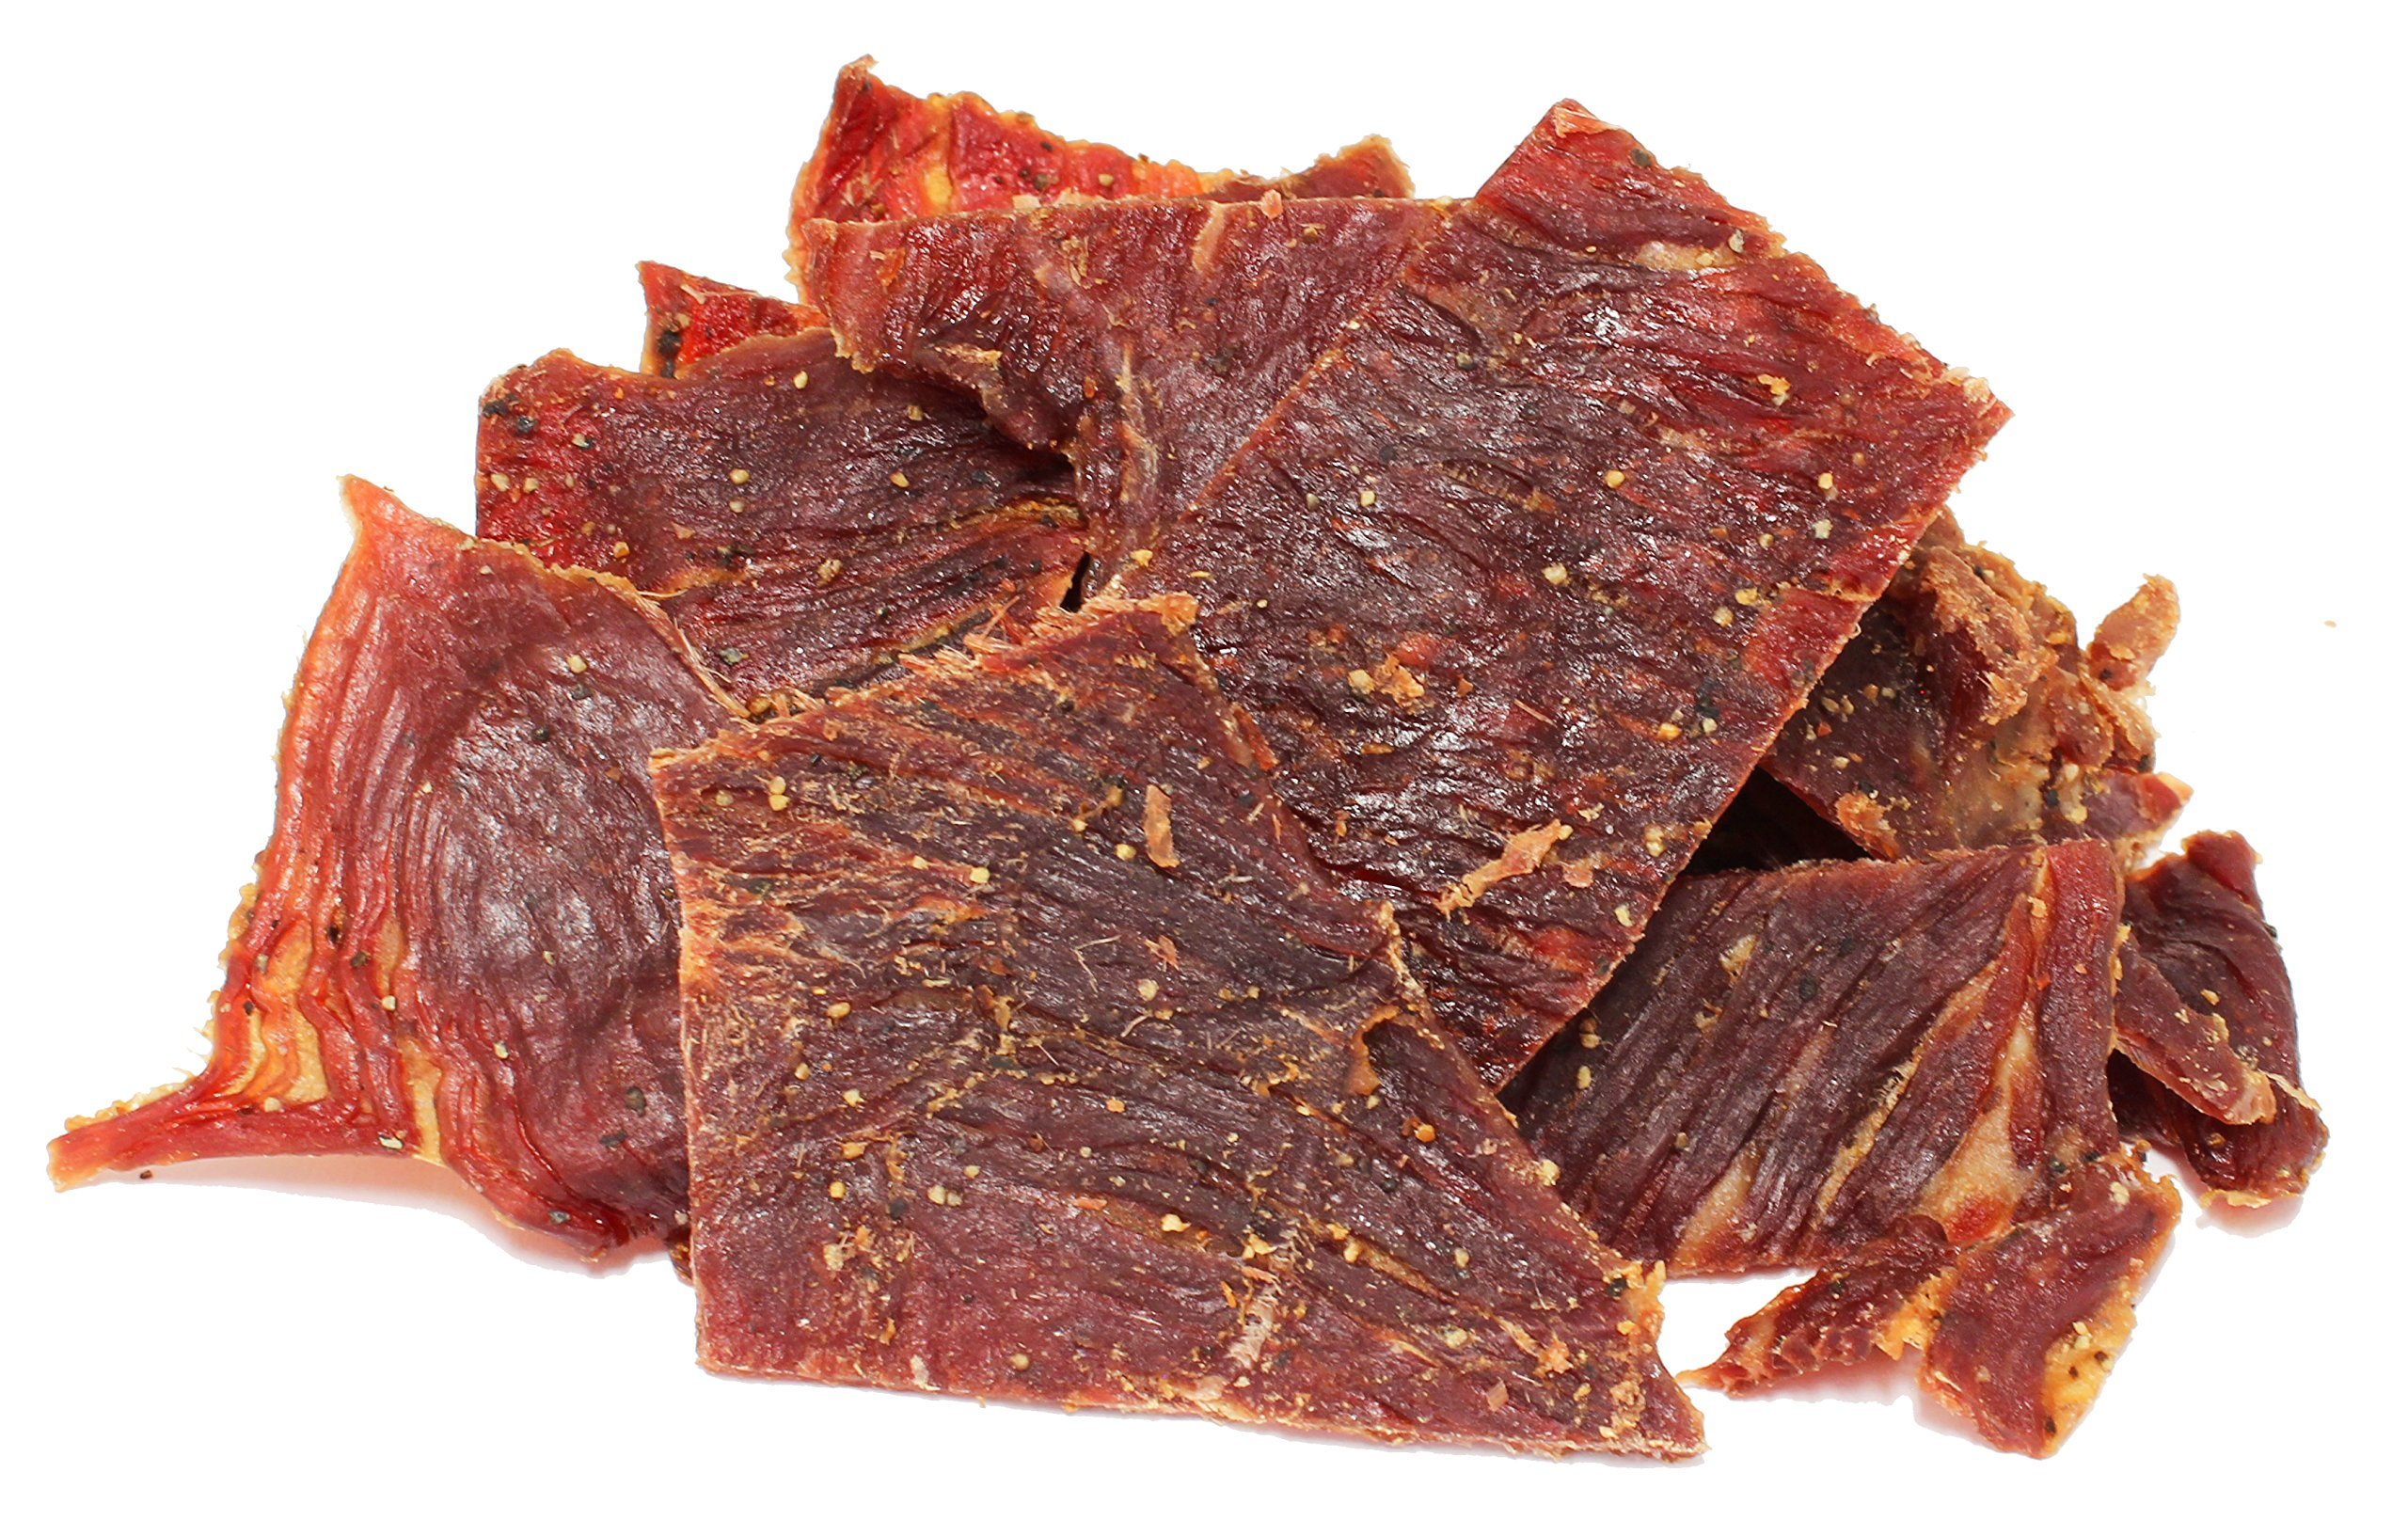 People's Choice Beef Jerky - Classic - Original - High Protein Meat Snack - 3 Ounce Bag by People's Choice Beef Jerky (Image #2)